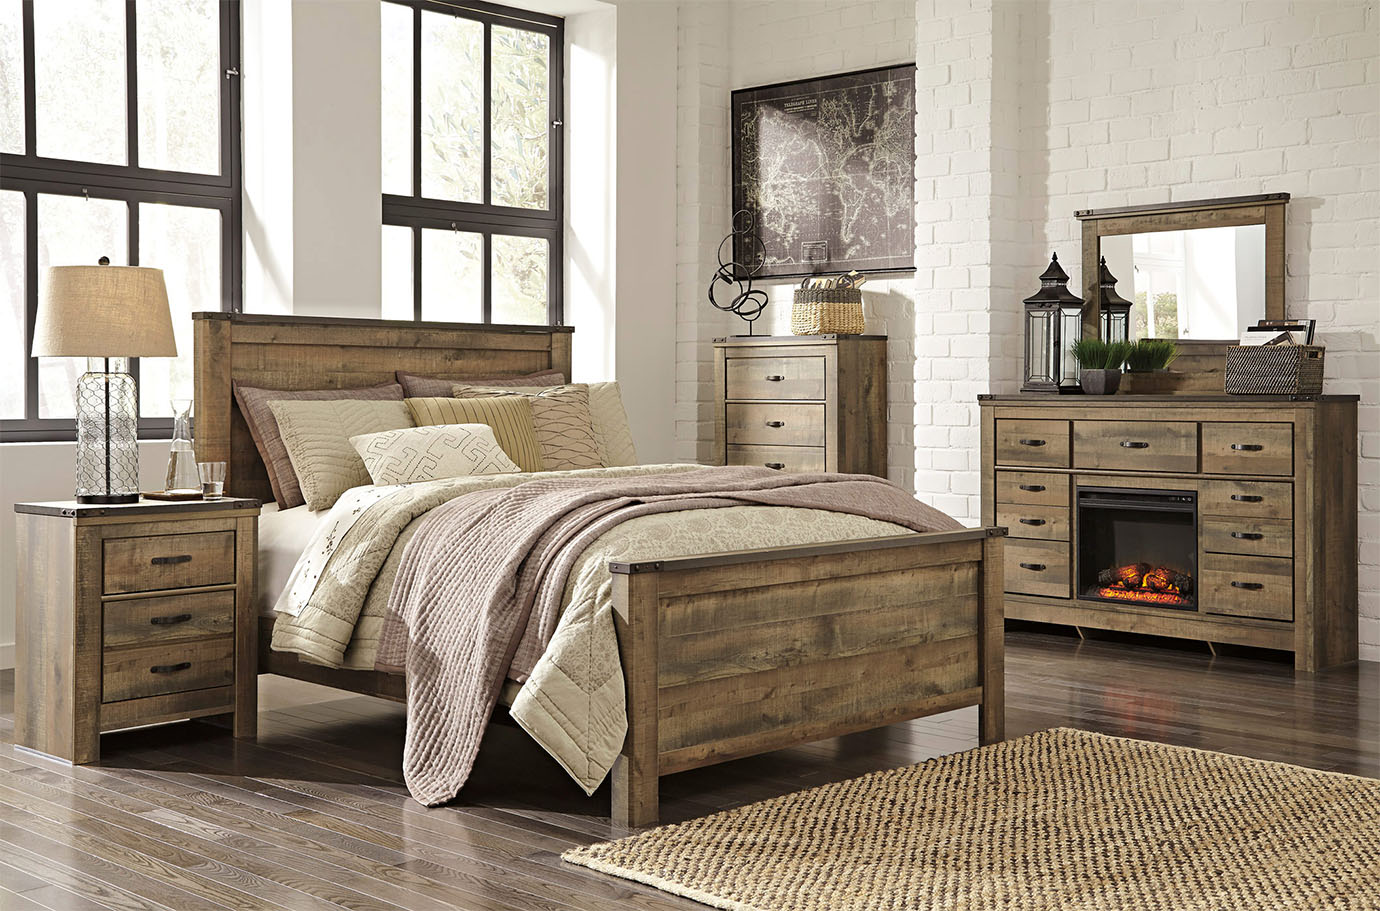 Bedroom Furniture Buying Guide Appliances Connection